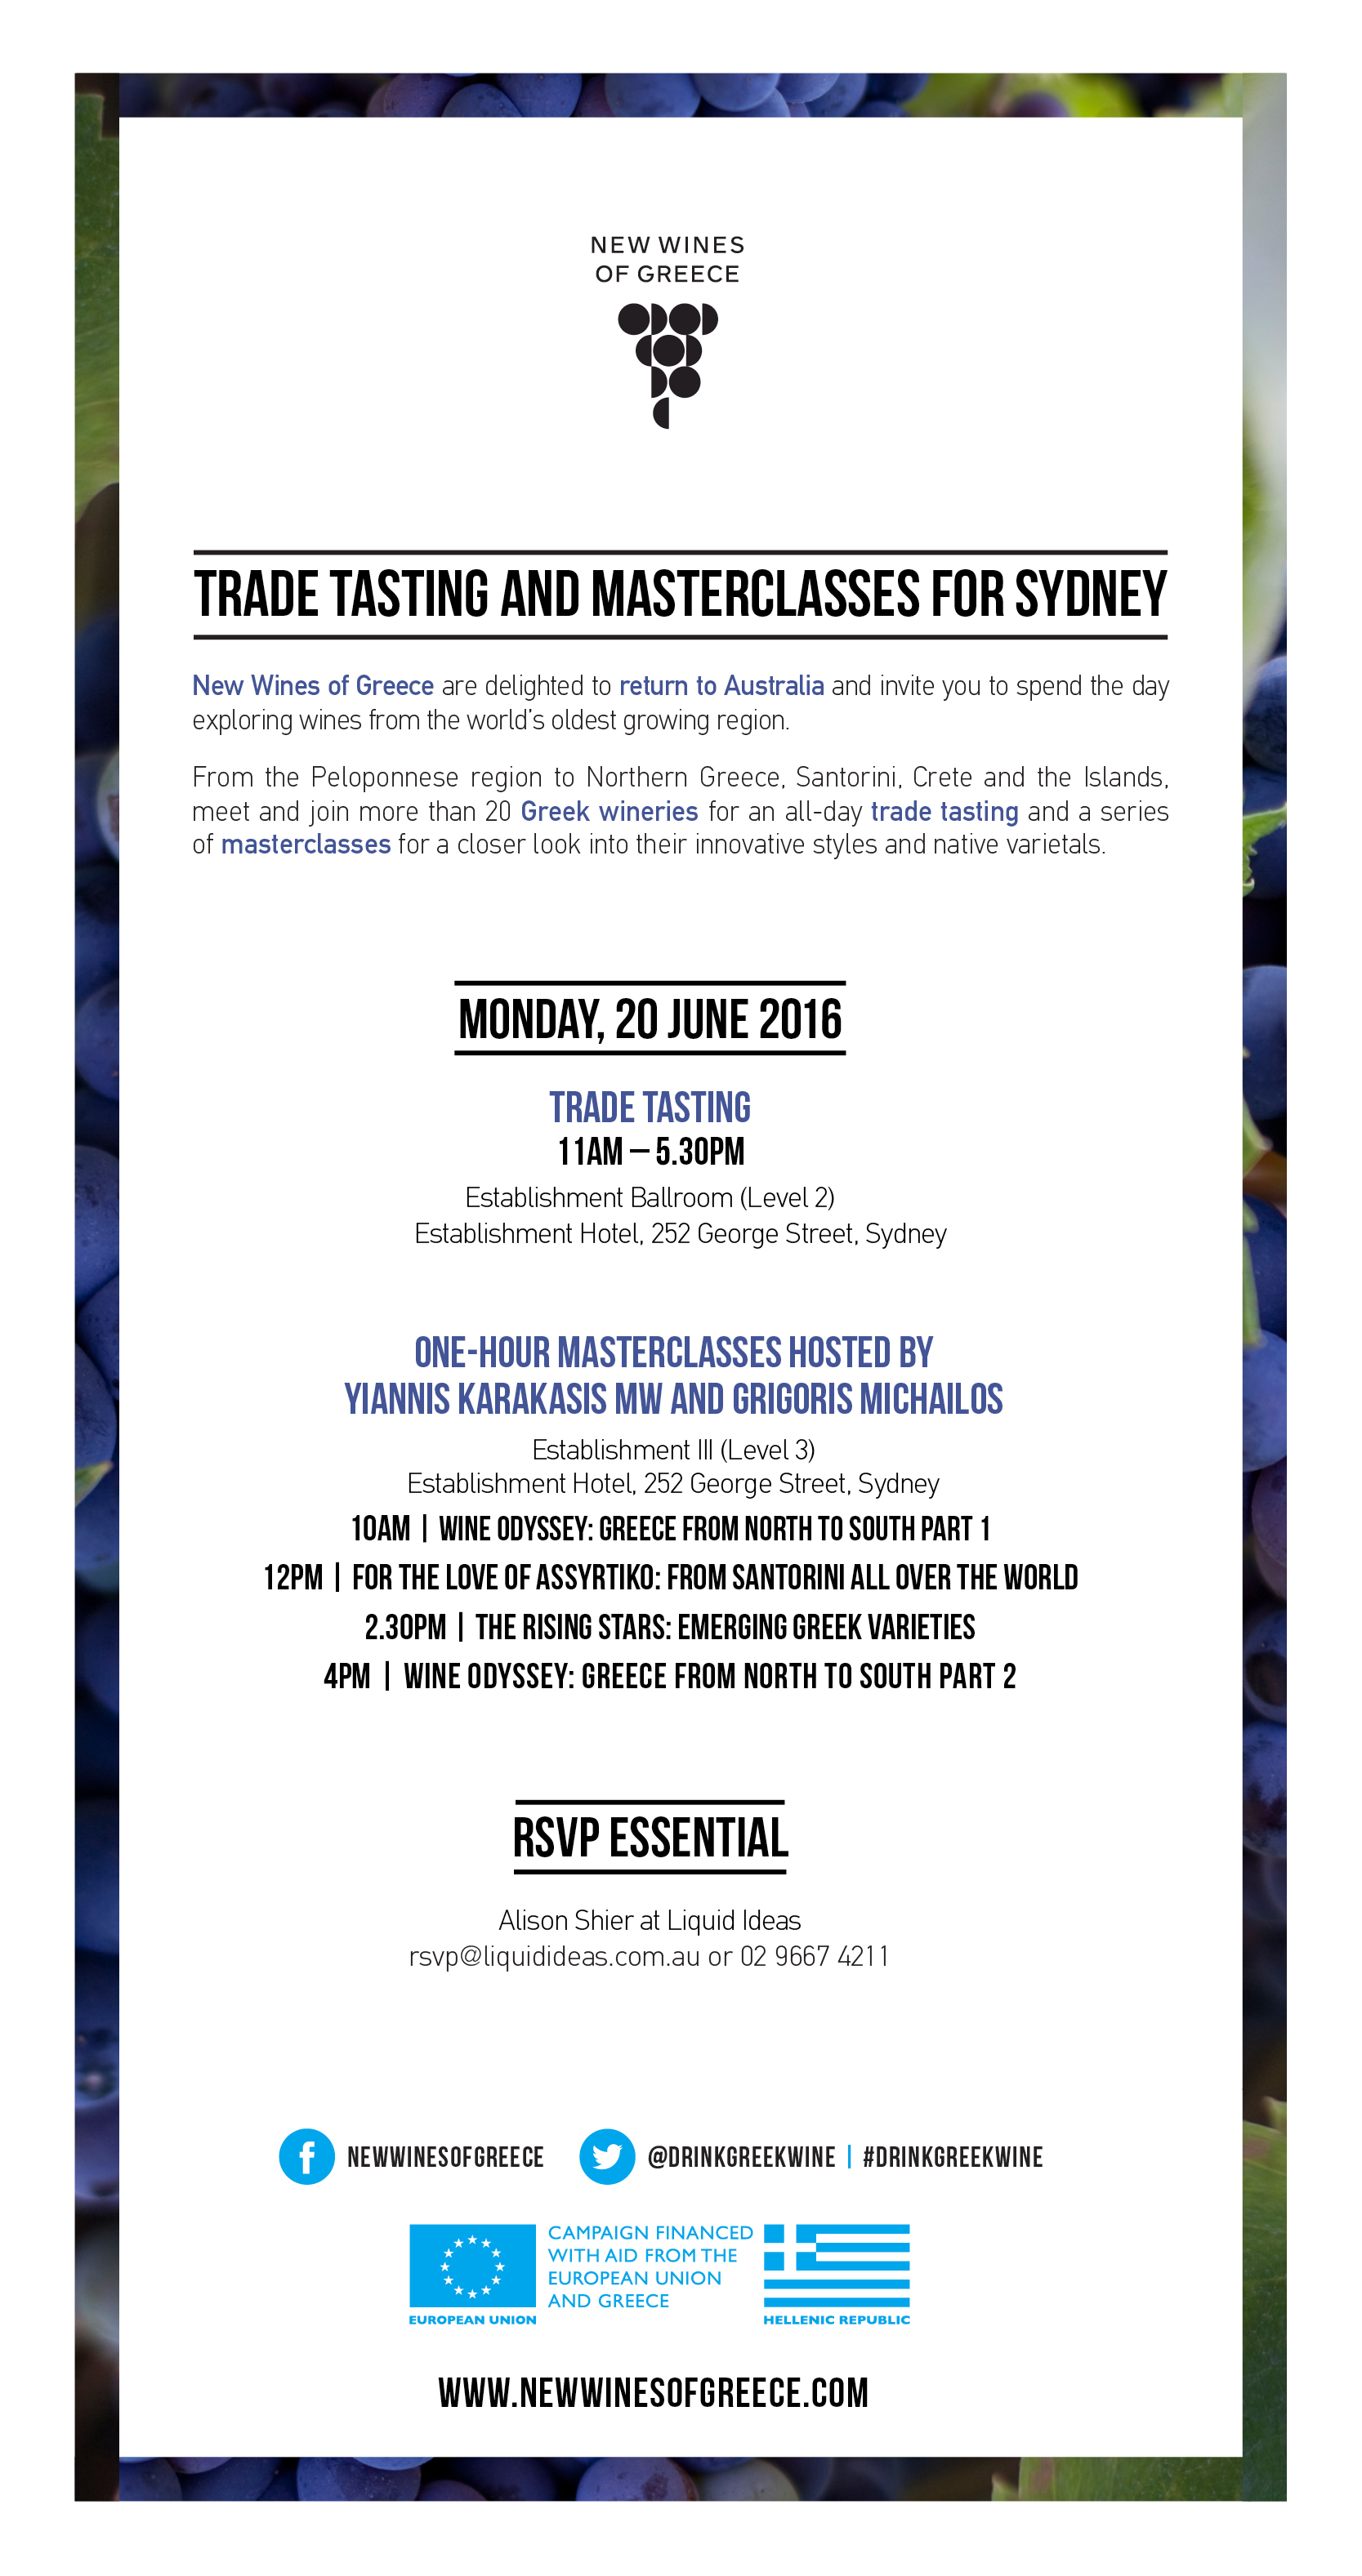 Trade tasting and masterclasses for Sydney